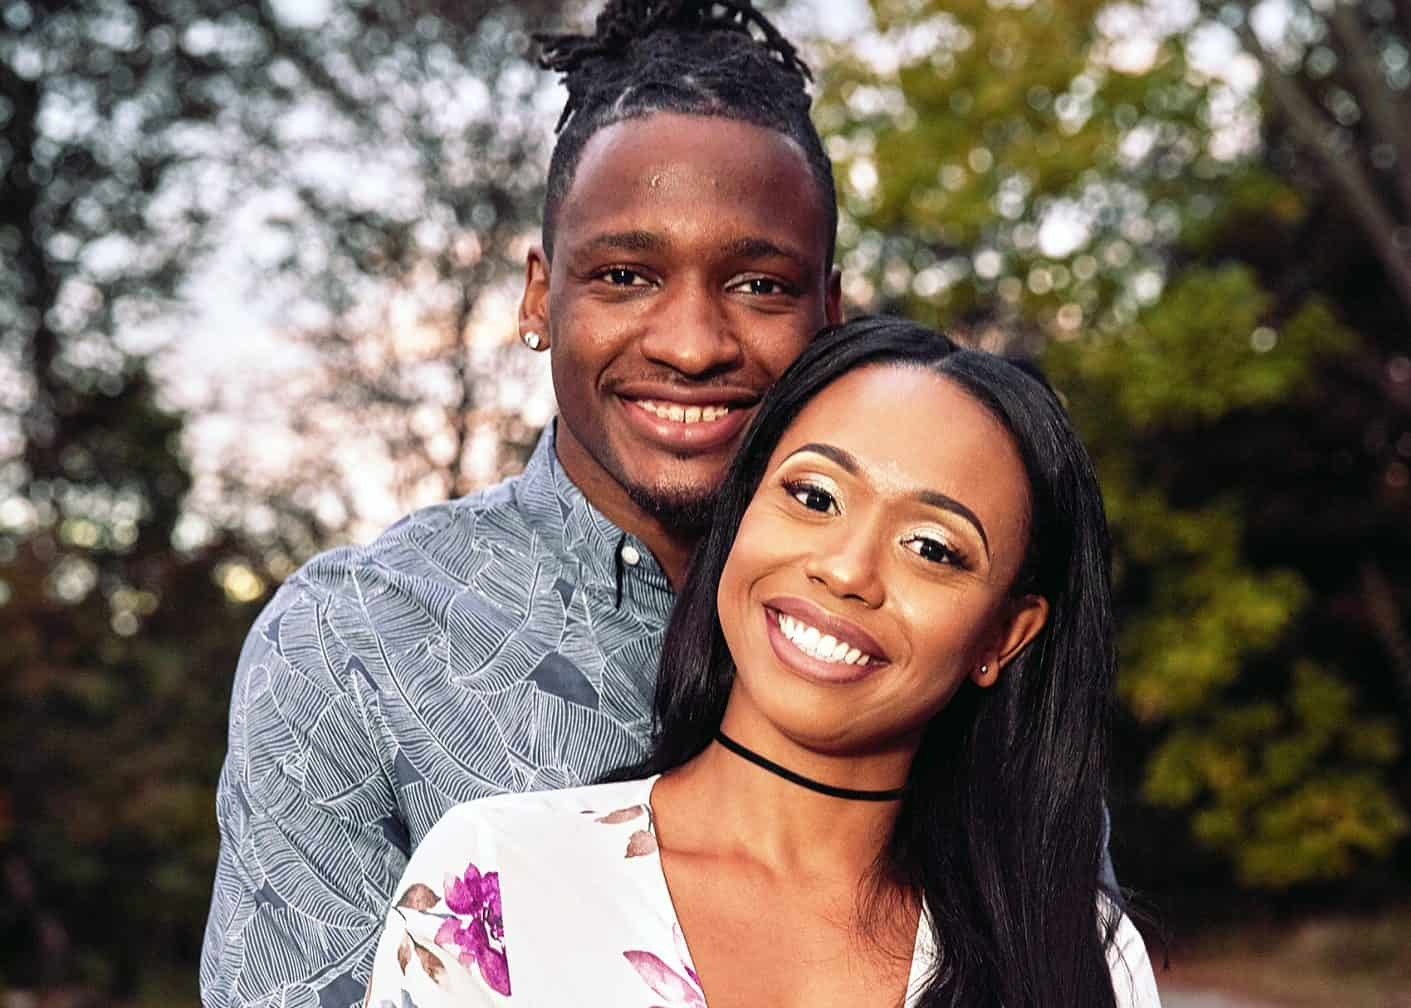 PHOTOS: MAFS Alums Shawniece and Jephte Welcome a Baby Girl!